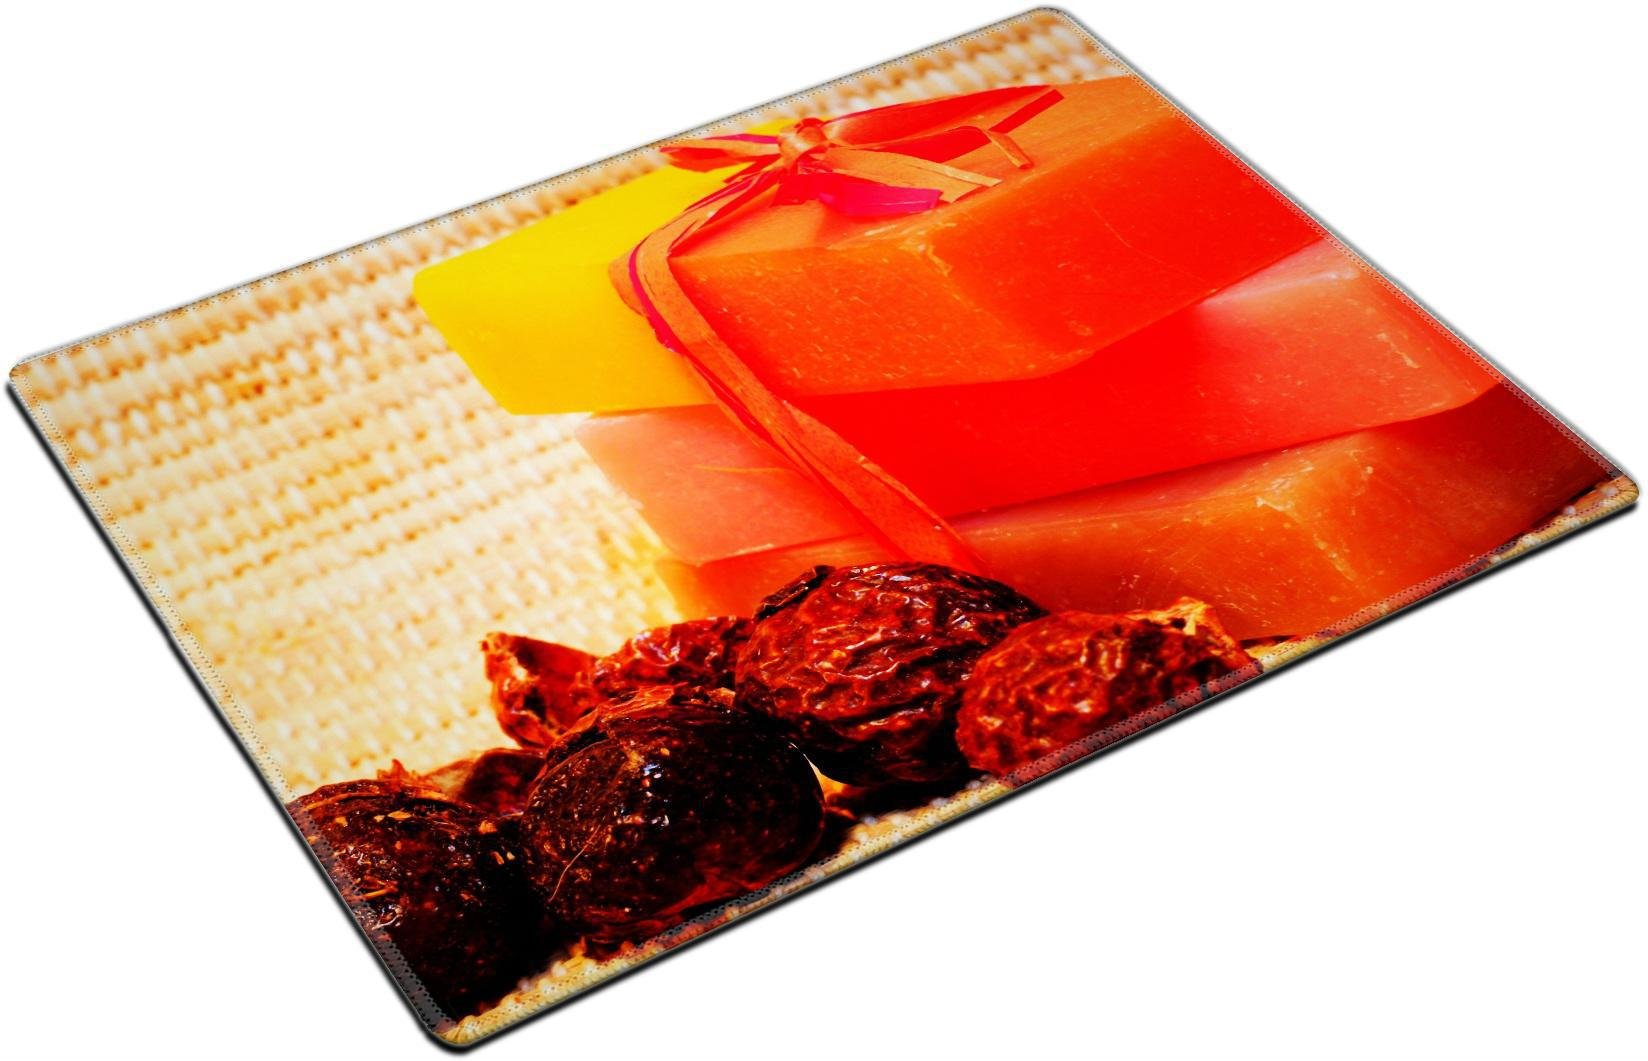 MSD Place Mat Non-Slip Natural Rubber Desk Pads design 12031116 Handmade Soap and soap nuts on the bamboo Square Coaster Spa products